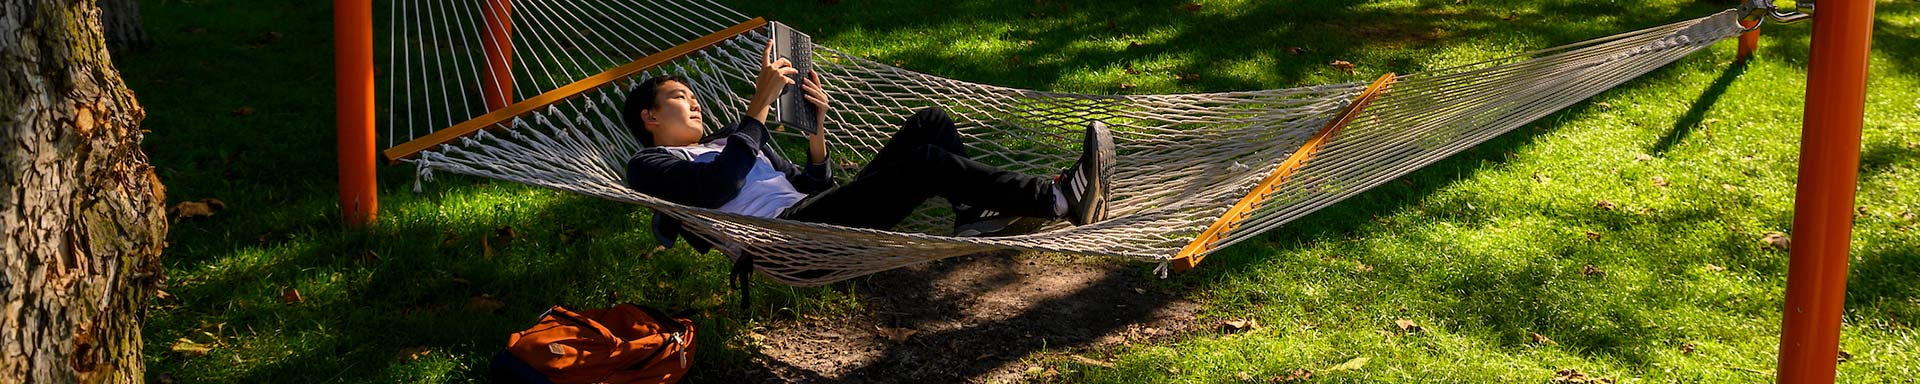 A student reads a book while laying in a hammock on campus.